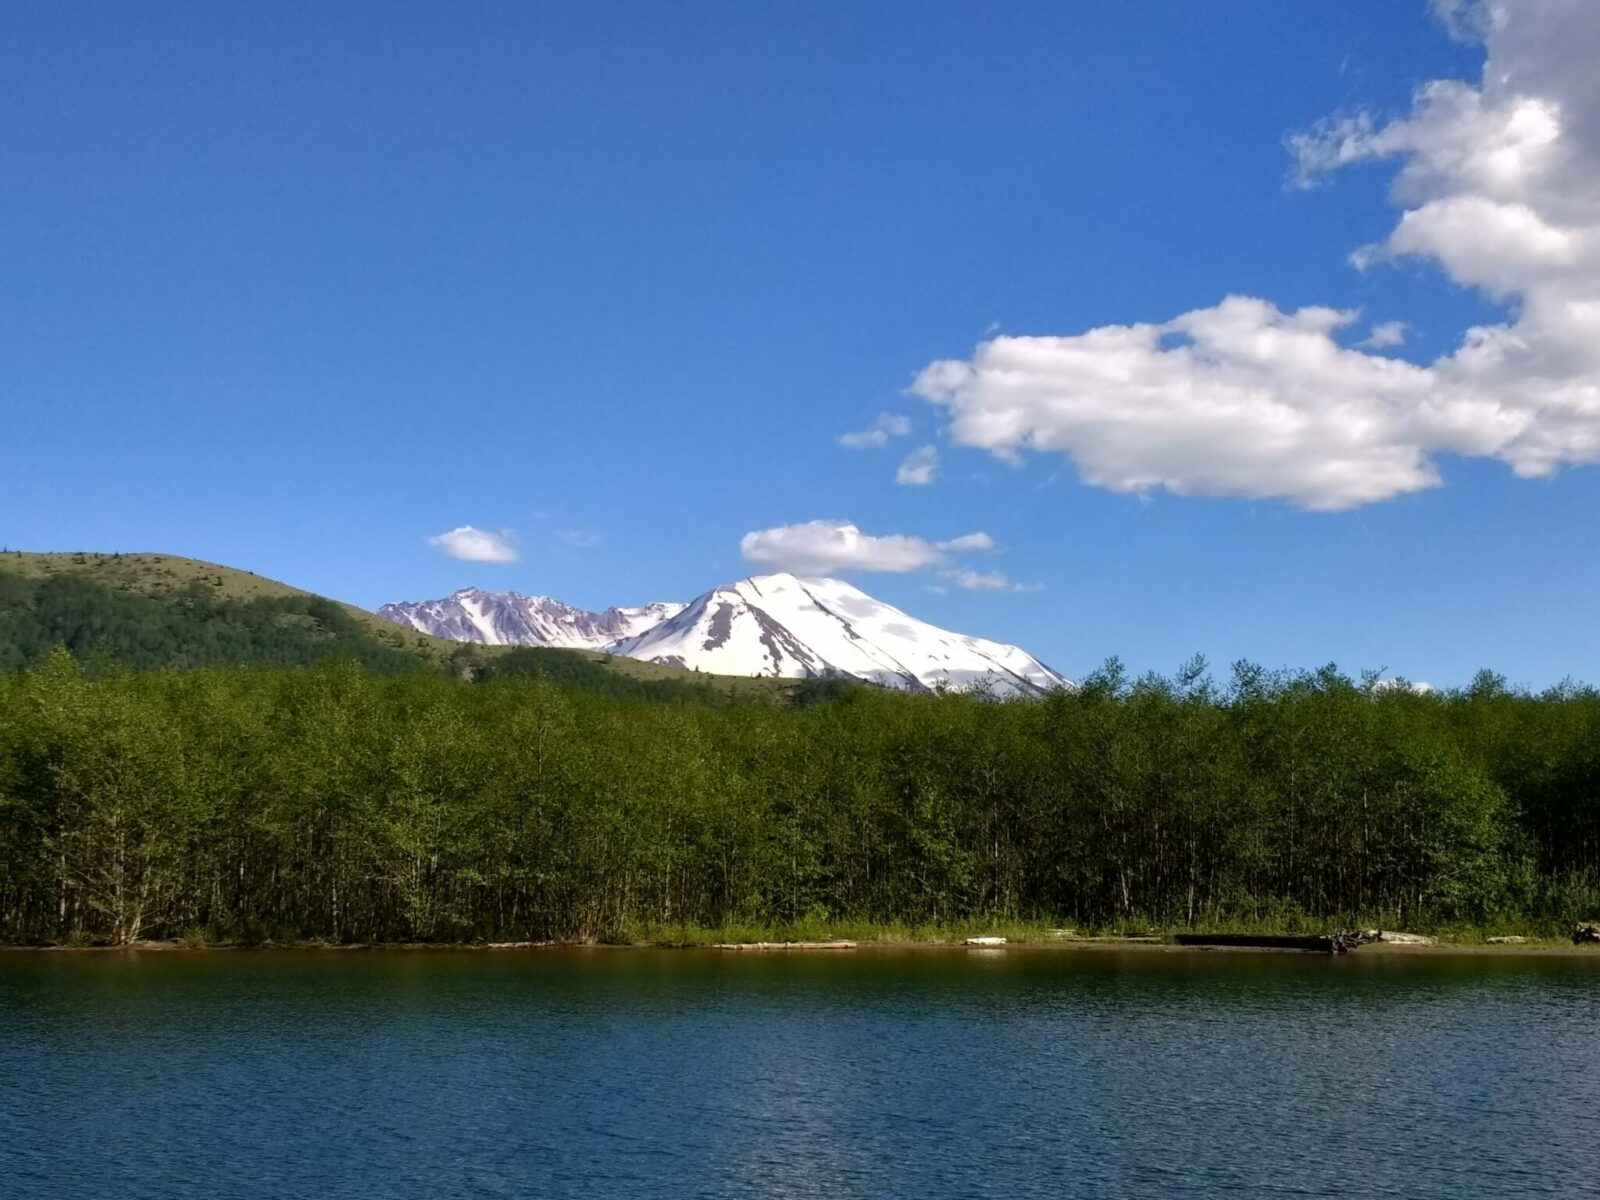 A lake surrounded by young trees with the crater and summit of Mt St Helens with some snow in the background